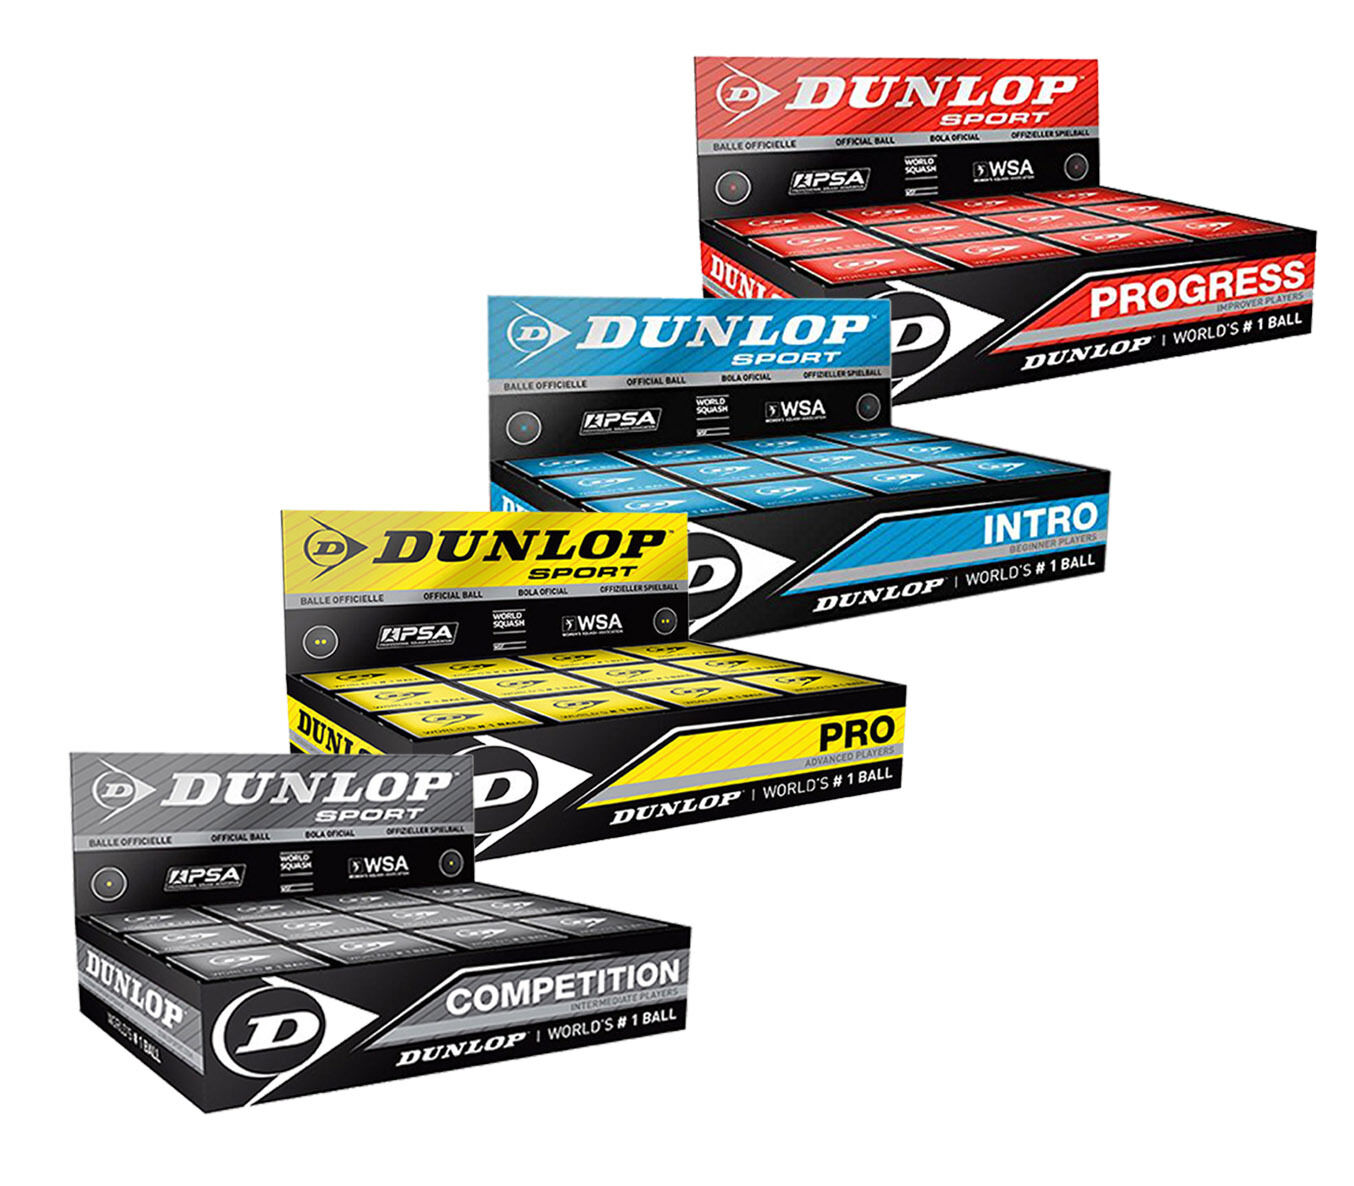 Dunlop Squash Balls Pro Double Dot Yellow - Competition Red Progress Intro bluee